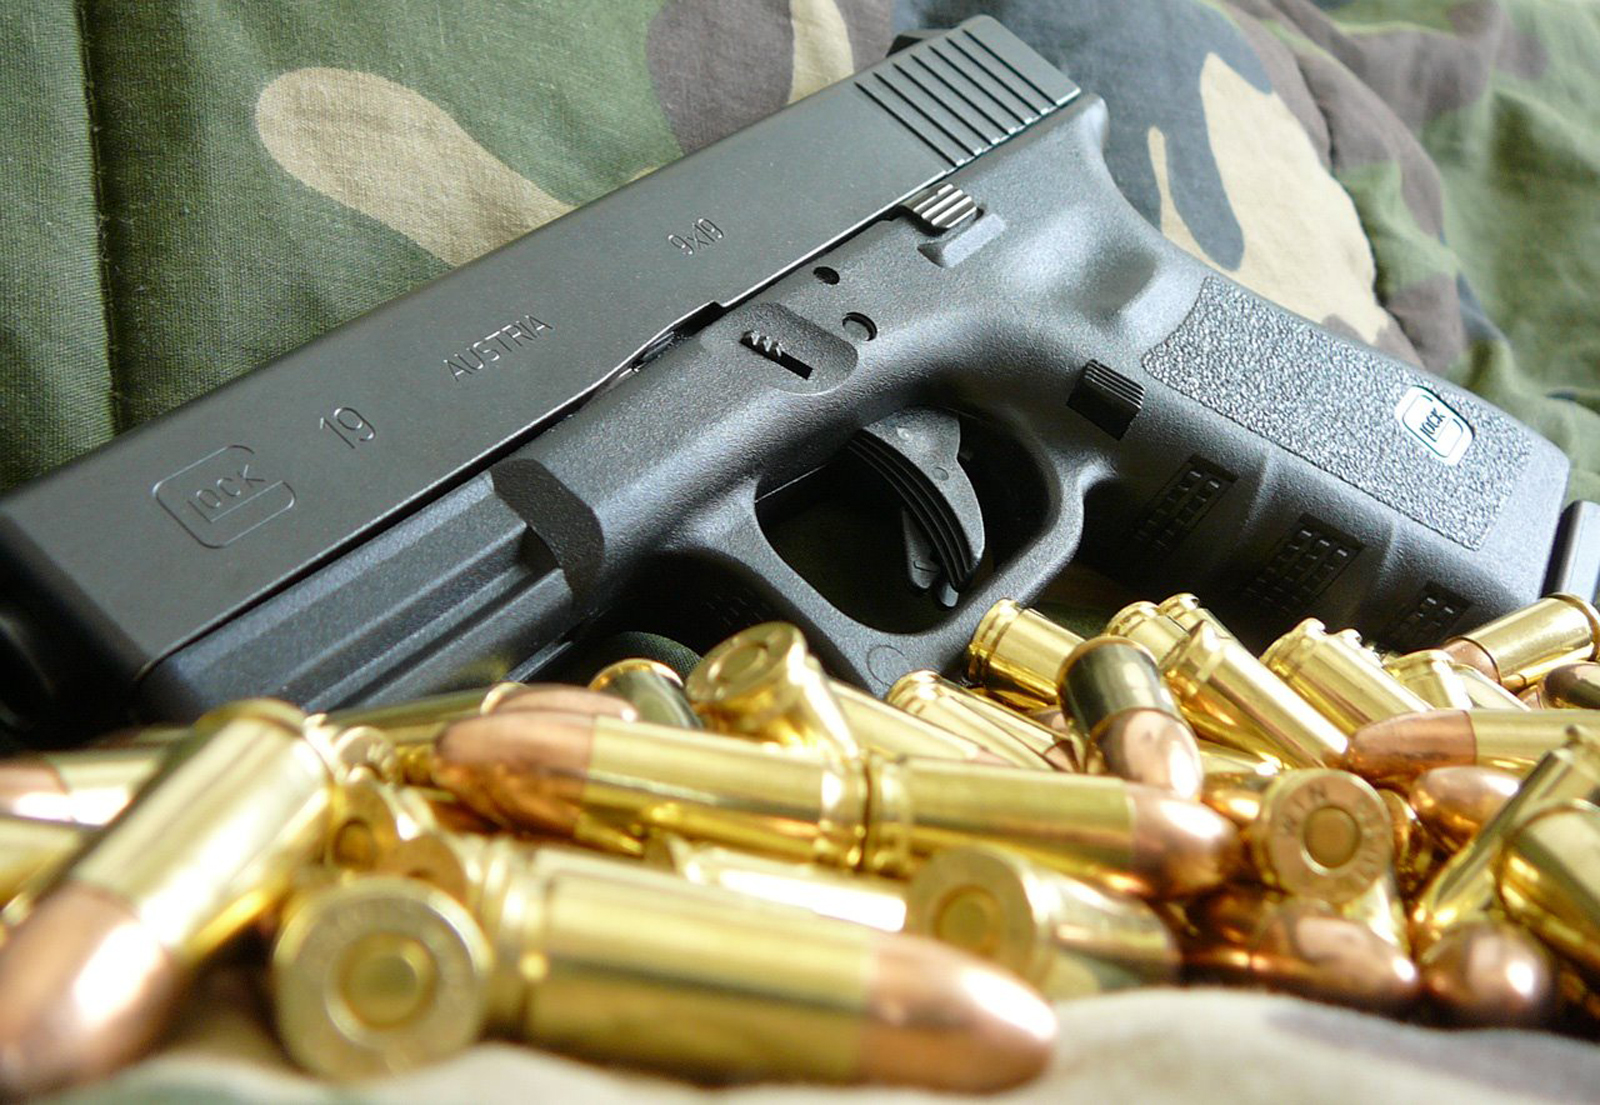 the gallery for glock 19 wallpaper